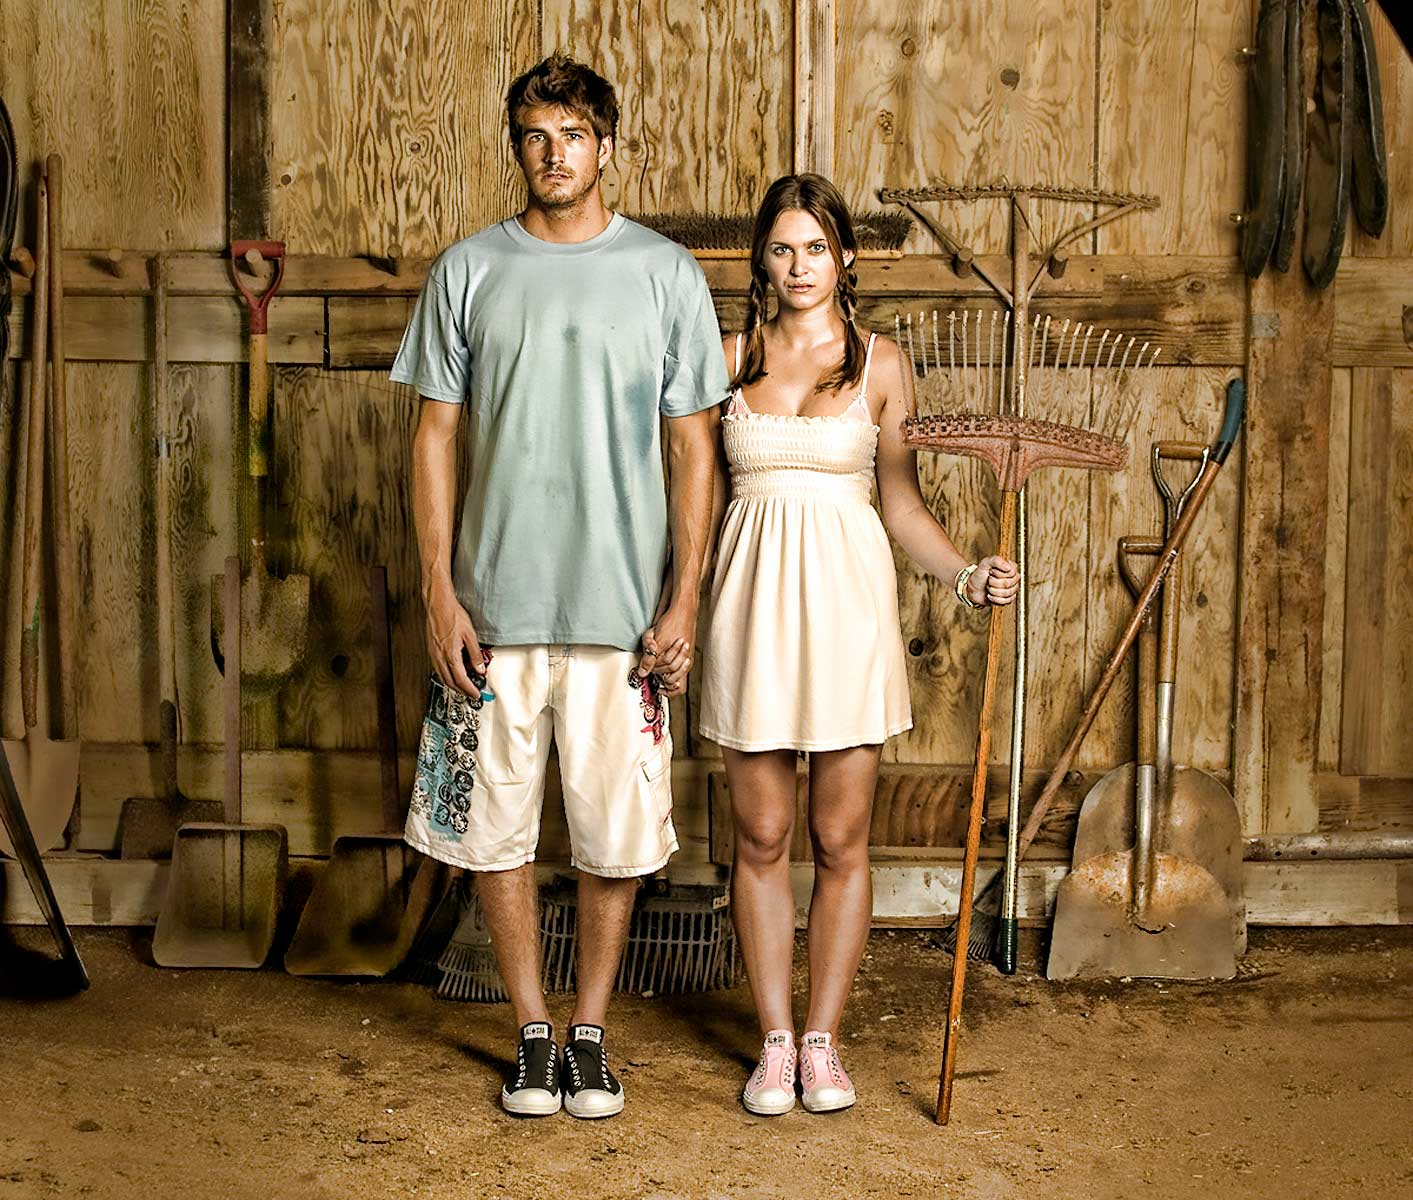 american-gothic-Barn-surf-couple